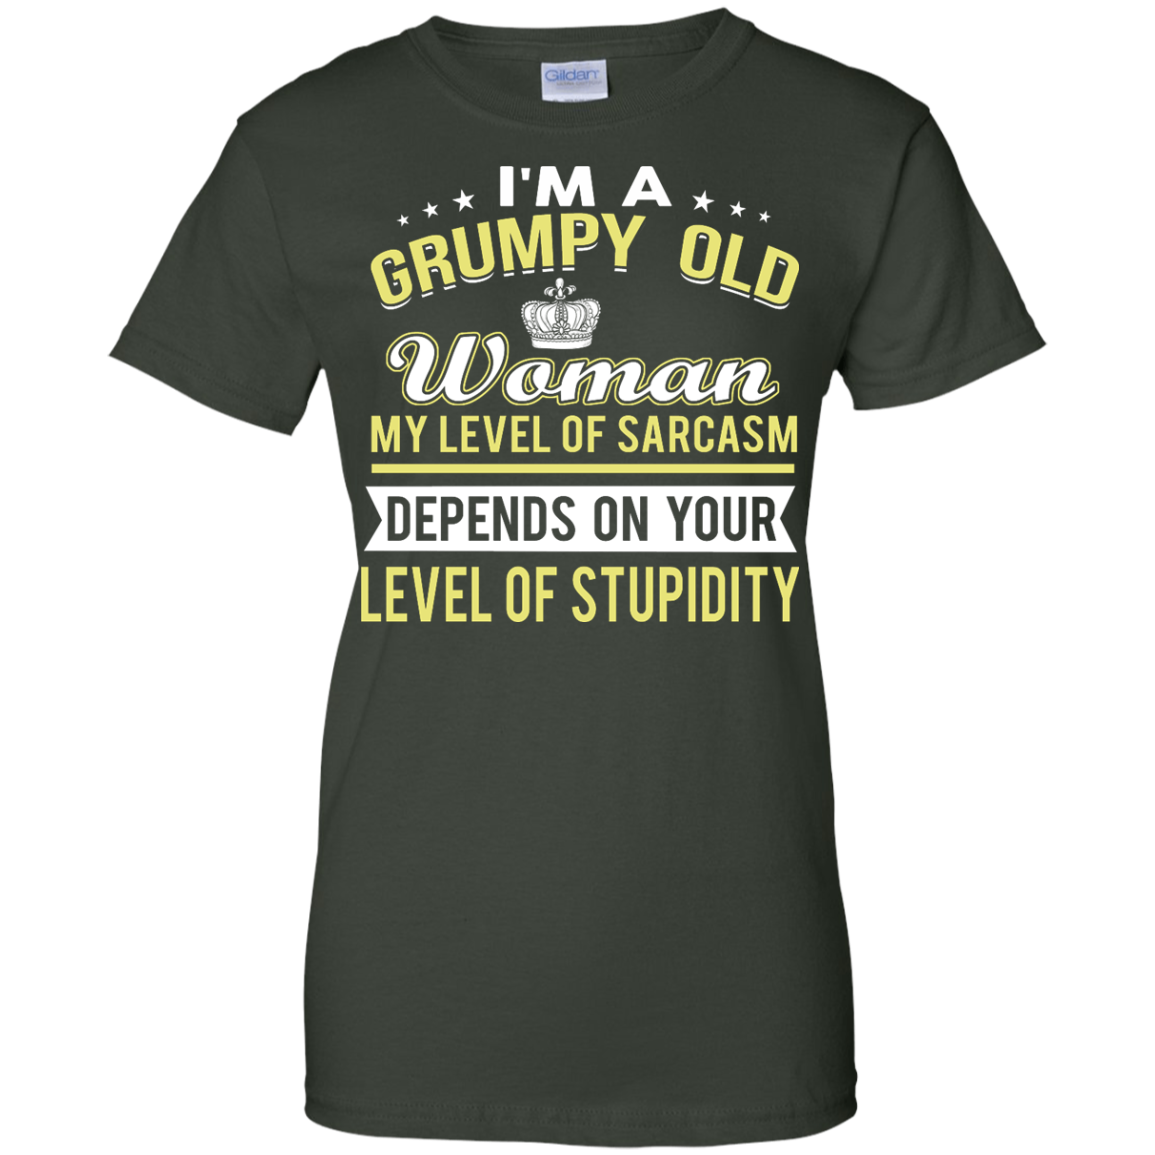 image 1025px I'm a grumpy old woman my level of sarcasm depends on your level of stupidity t shirts